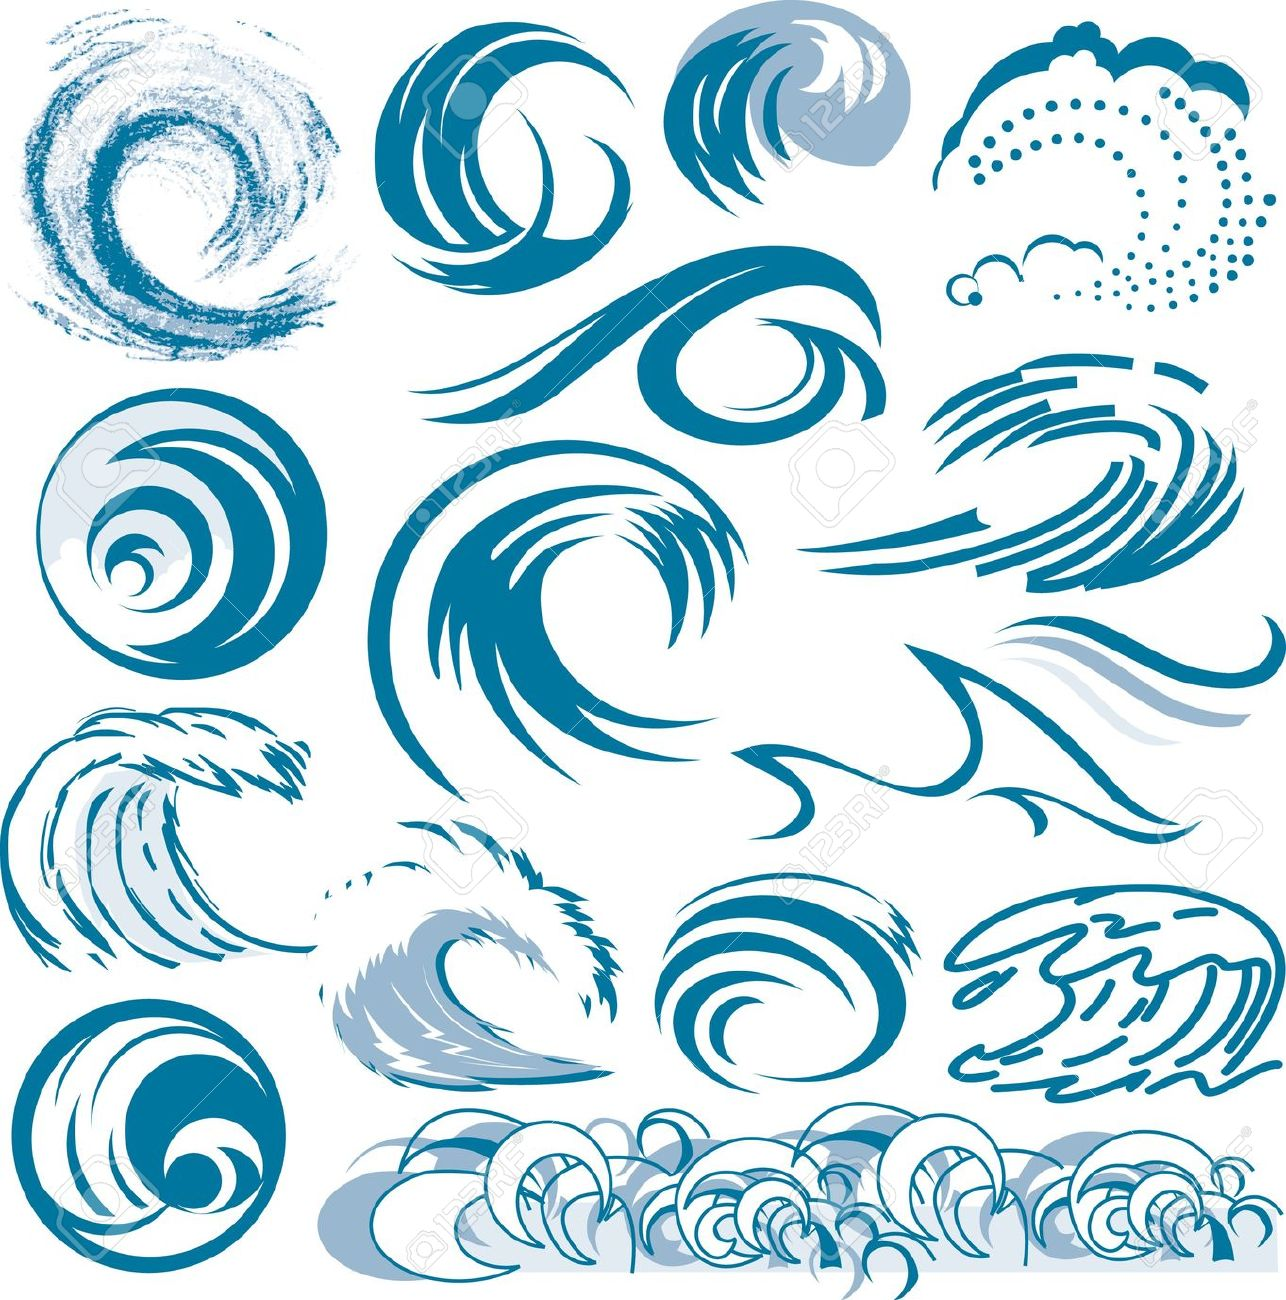 Vagues clipart - Clipground